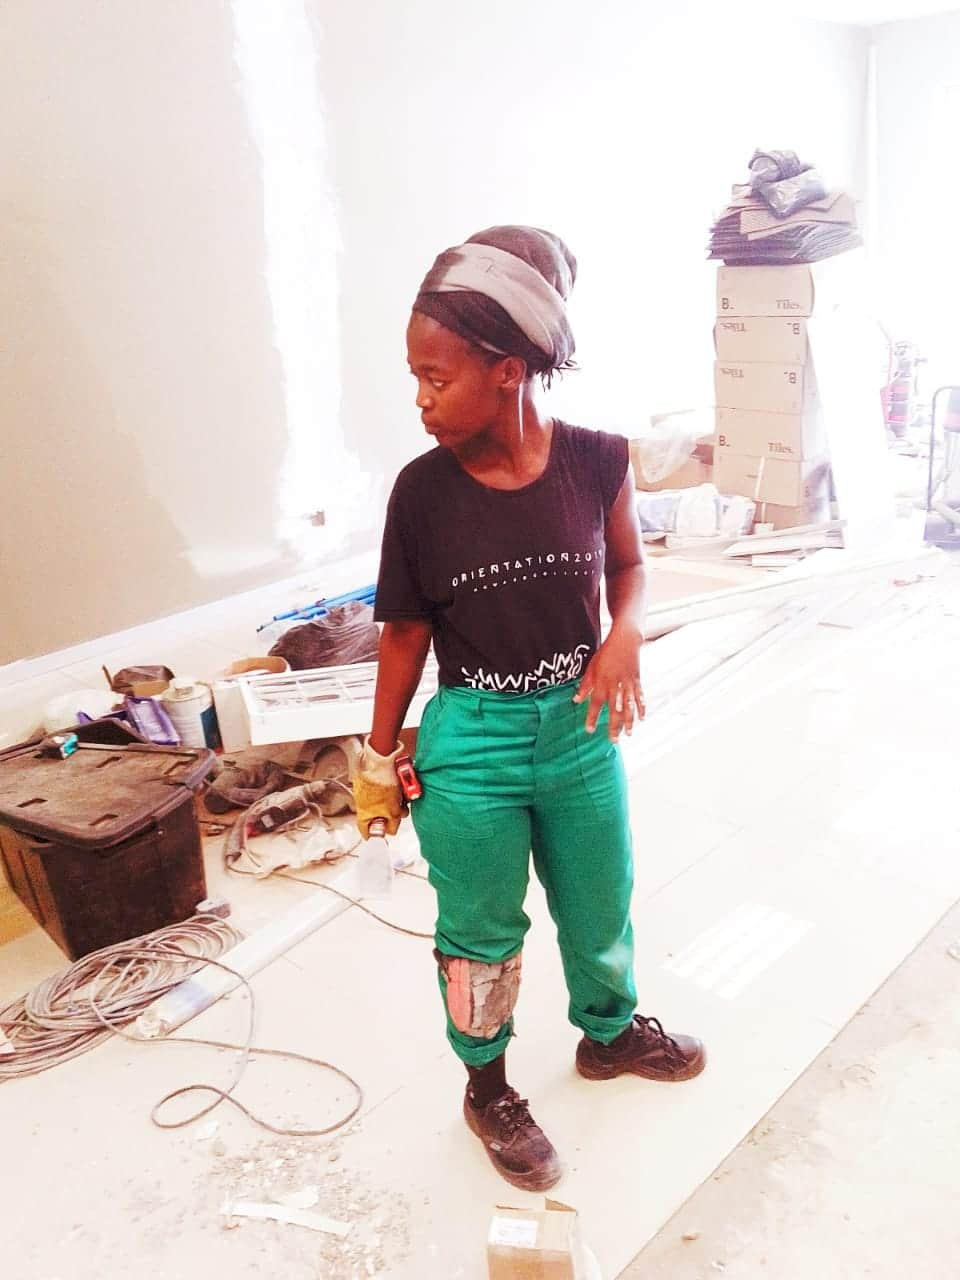 Meet the fearless female builder taking on the man's world